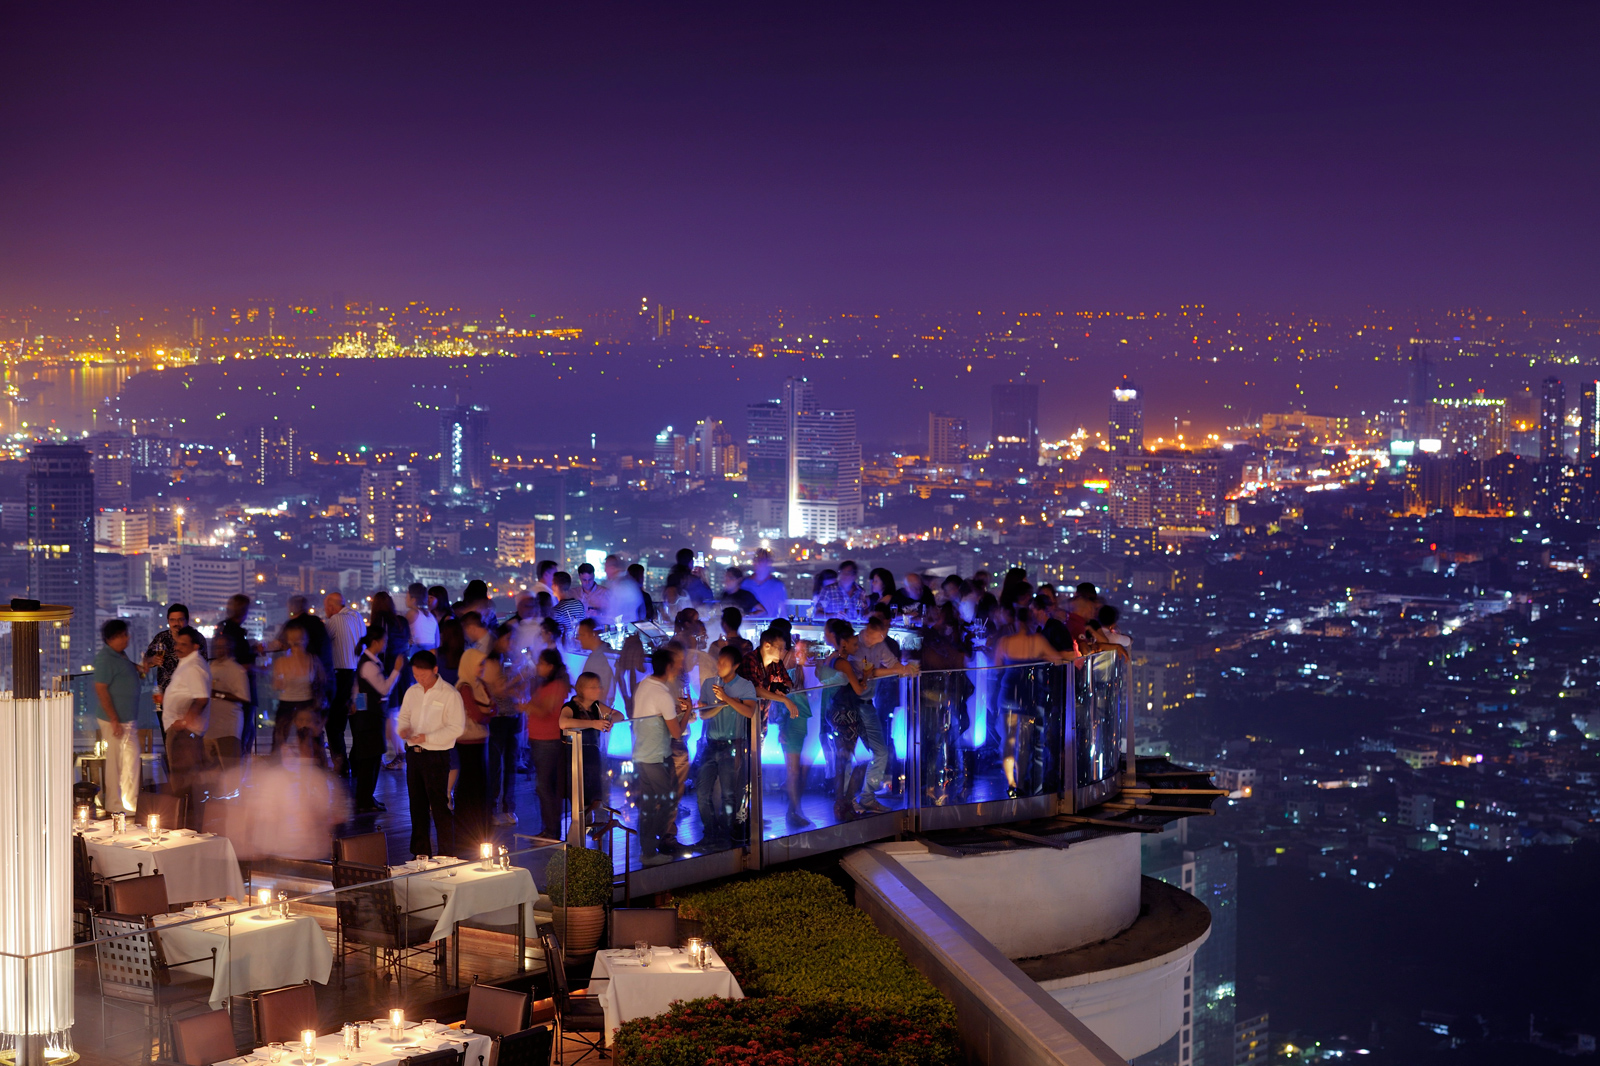 Sky bar - the world's highest open air bar and restaurant